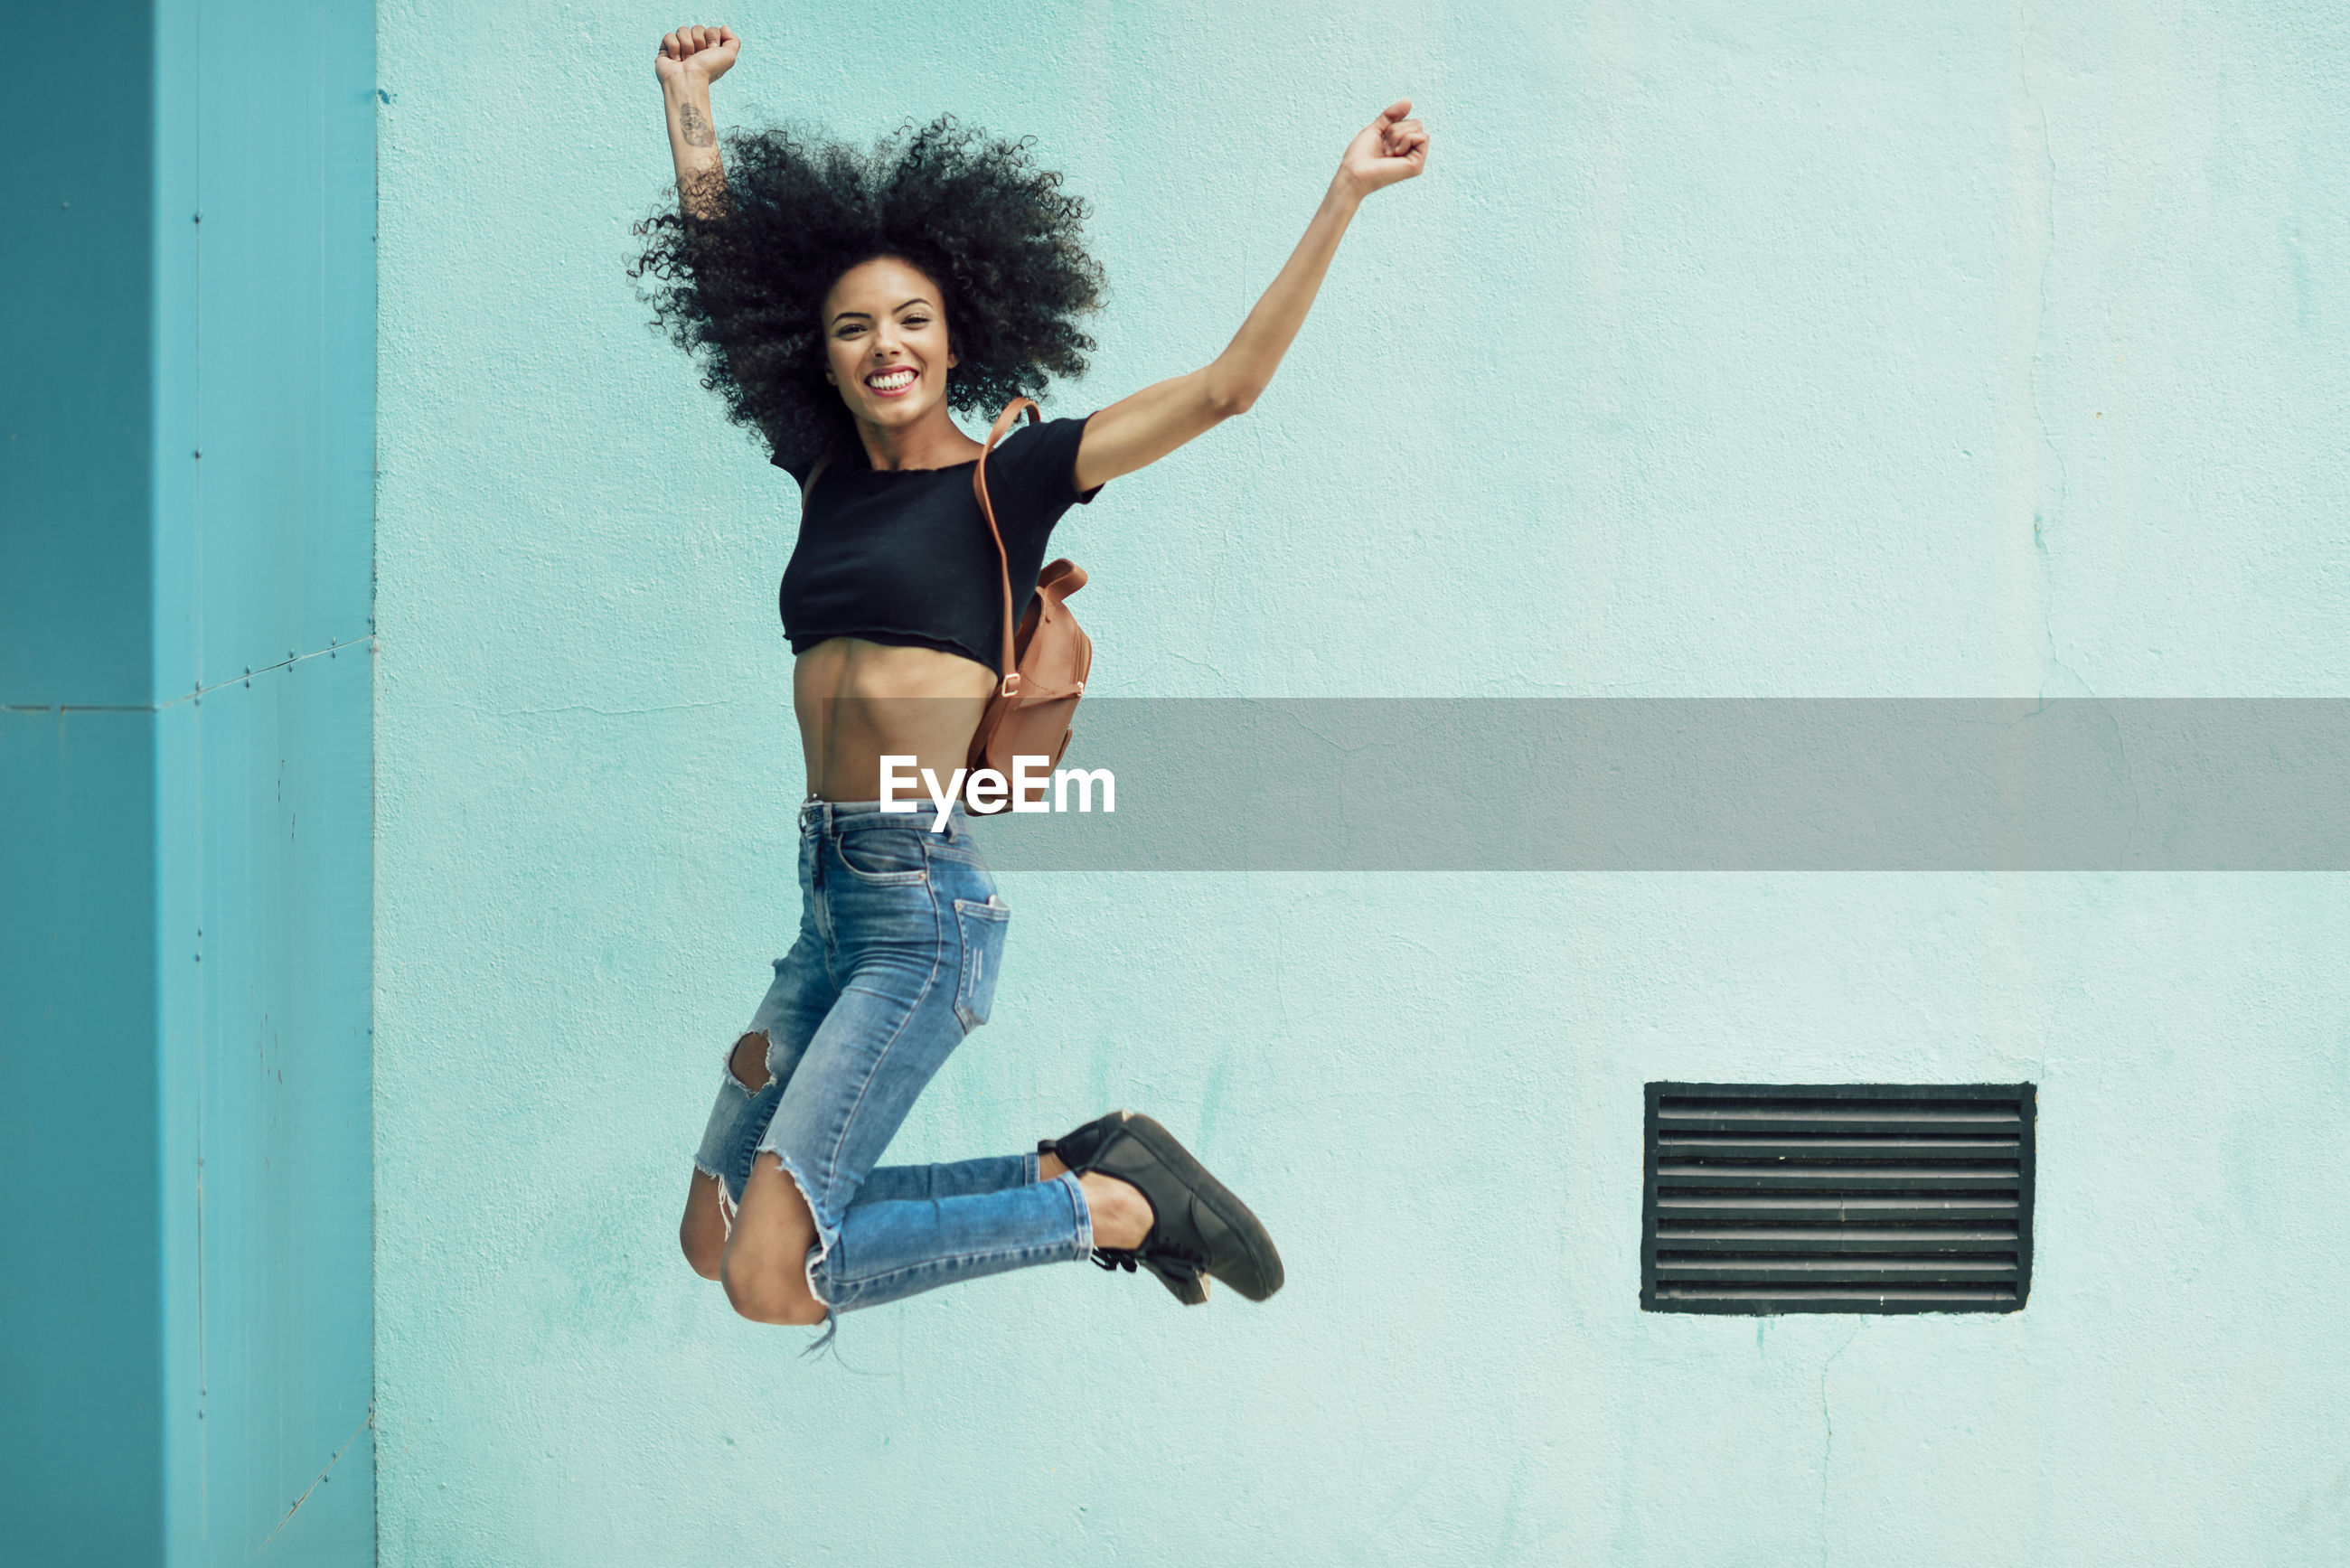 Portrait of happy young backpack woman jumping against wall